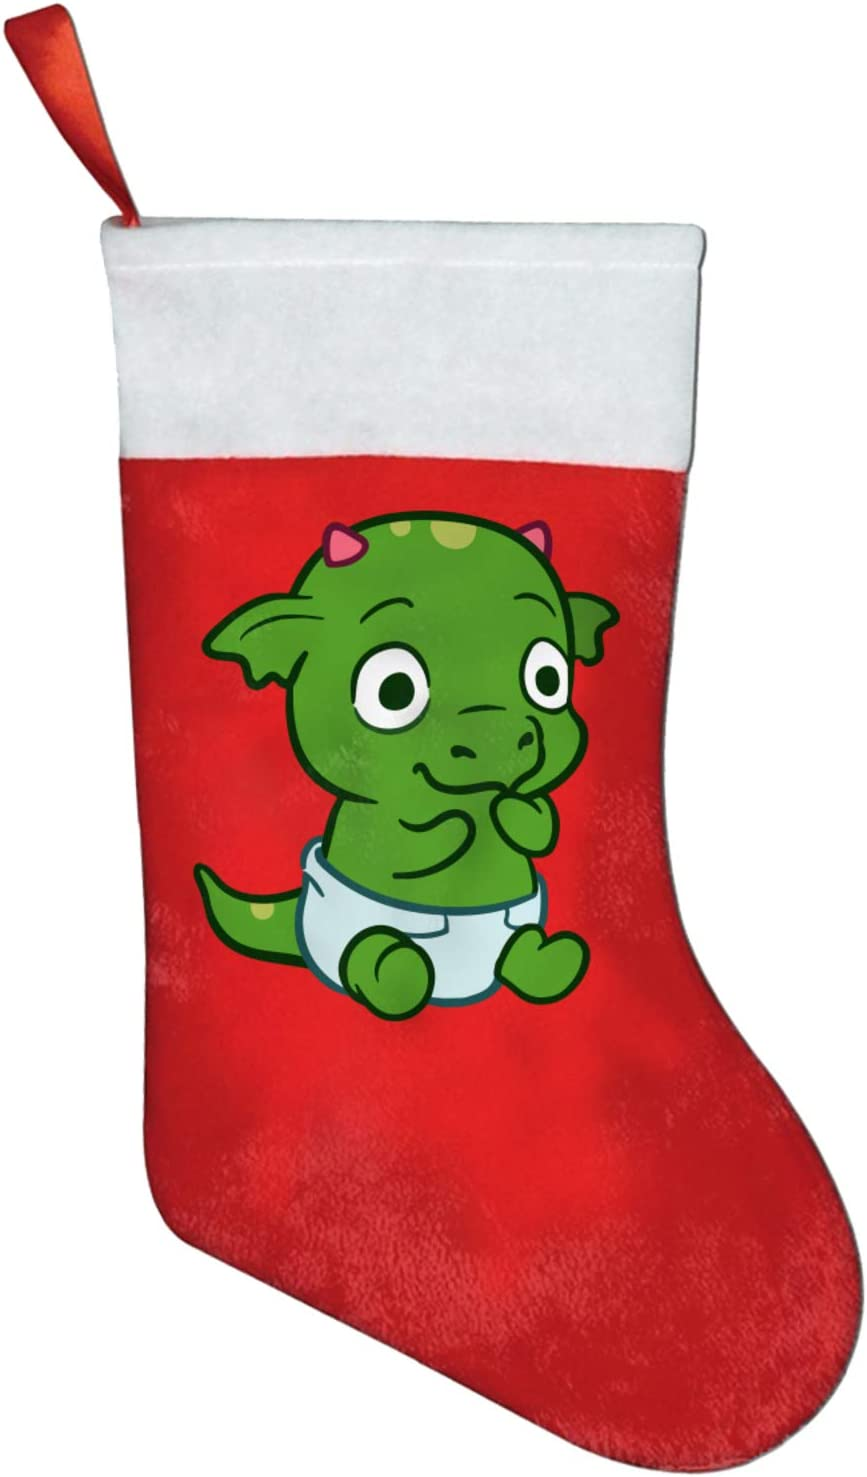 NRDXQ Green Baby Dragon online shop Christmas Size Xmas Limited time sale Big Stockin Stocking